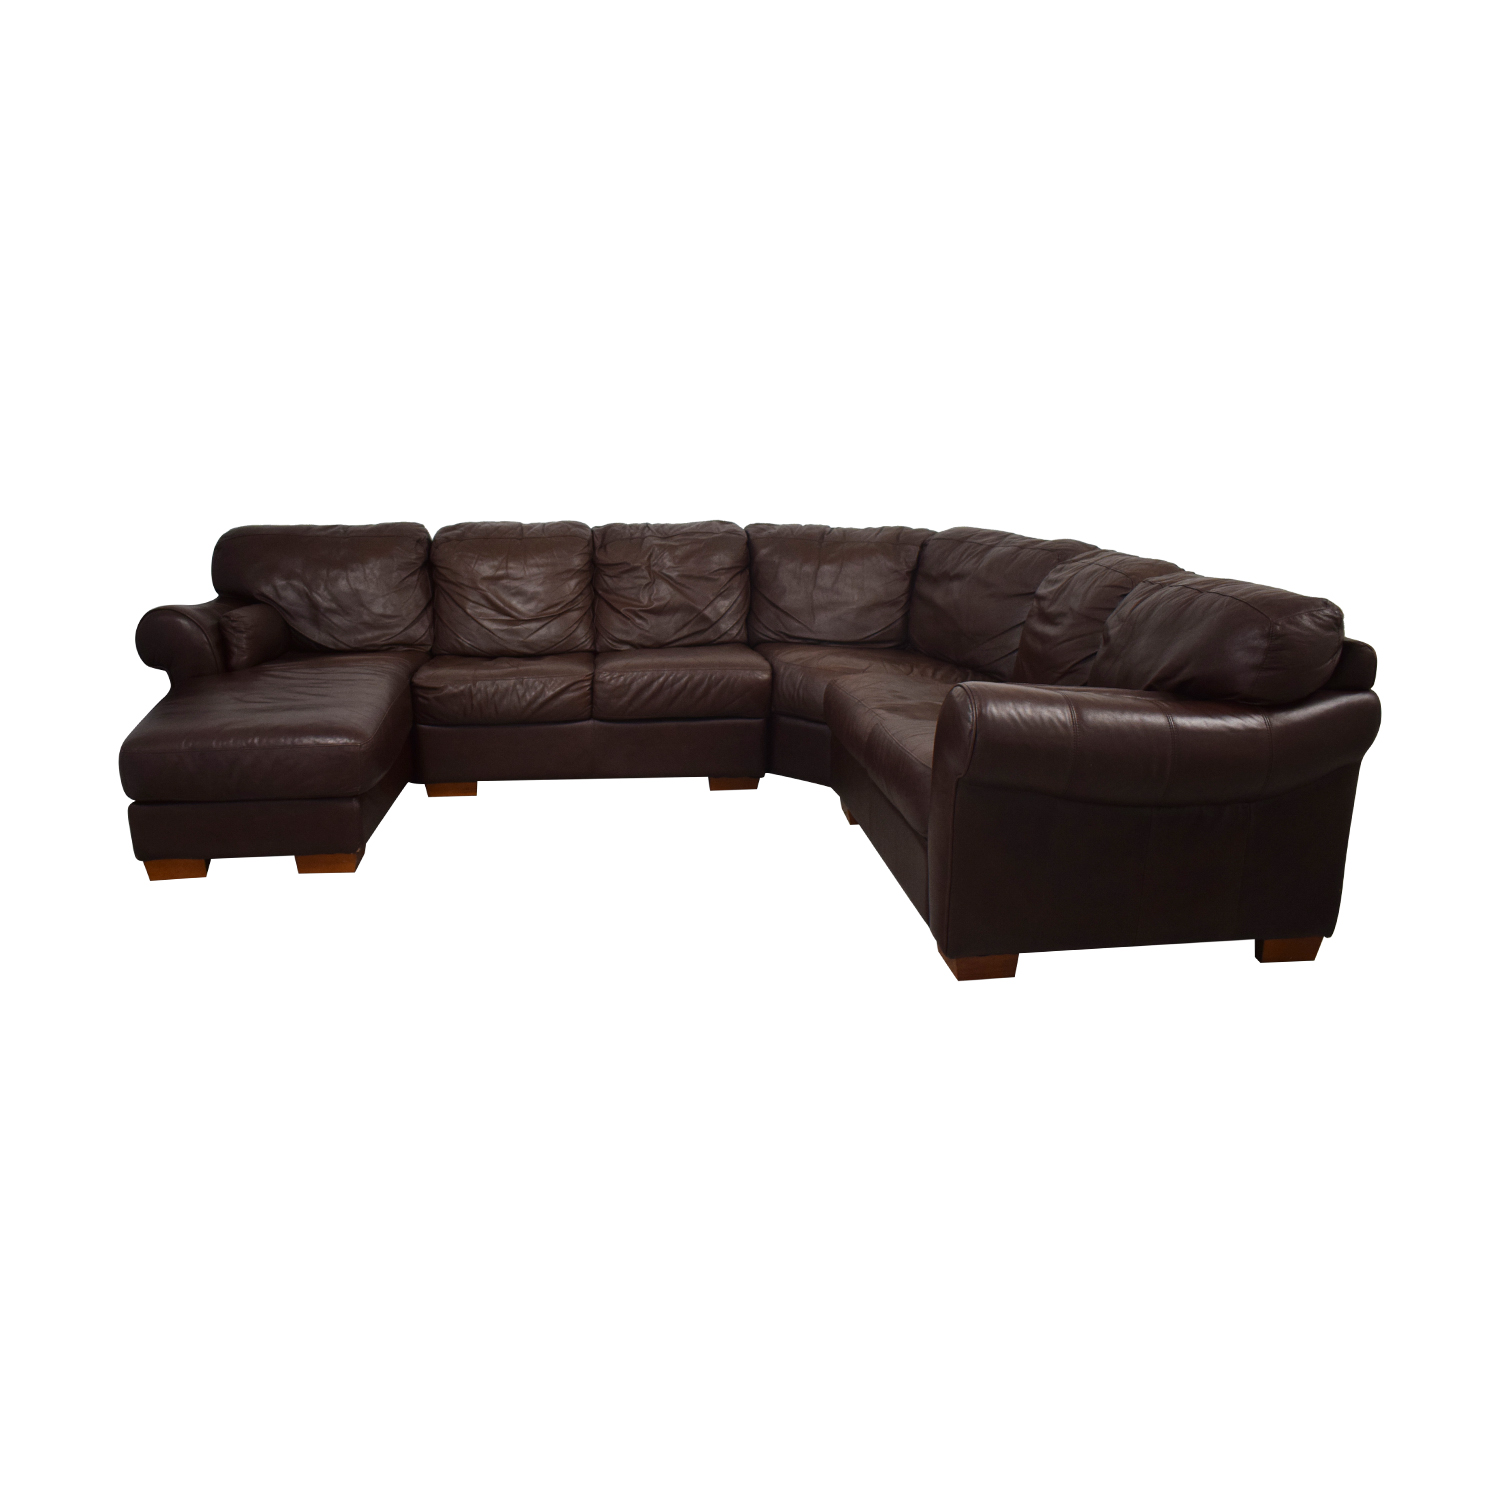 Chateau Dax Furniture Reviews: Chateau D'Ax Chateau D'Ax Divani Brown Leather L